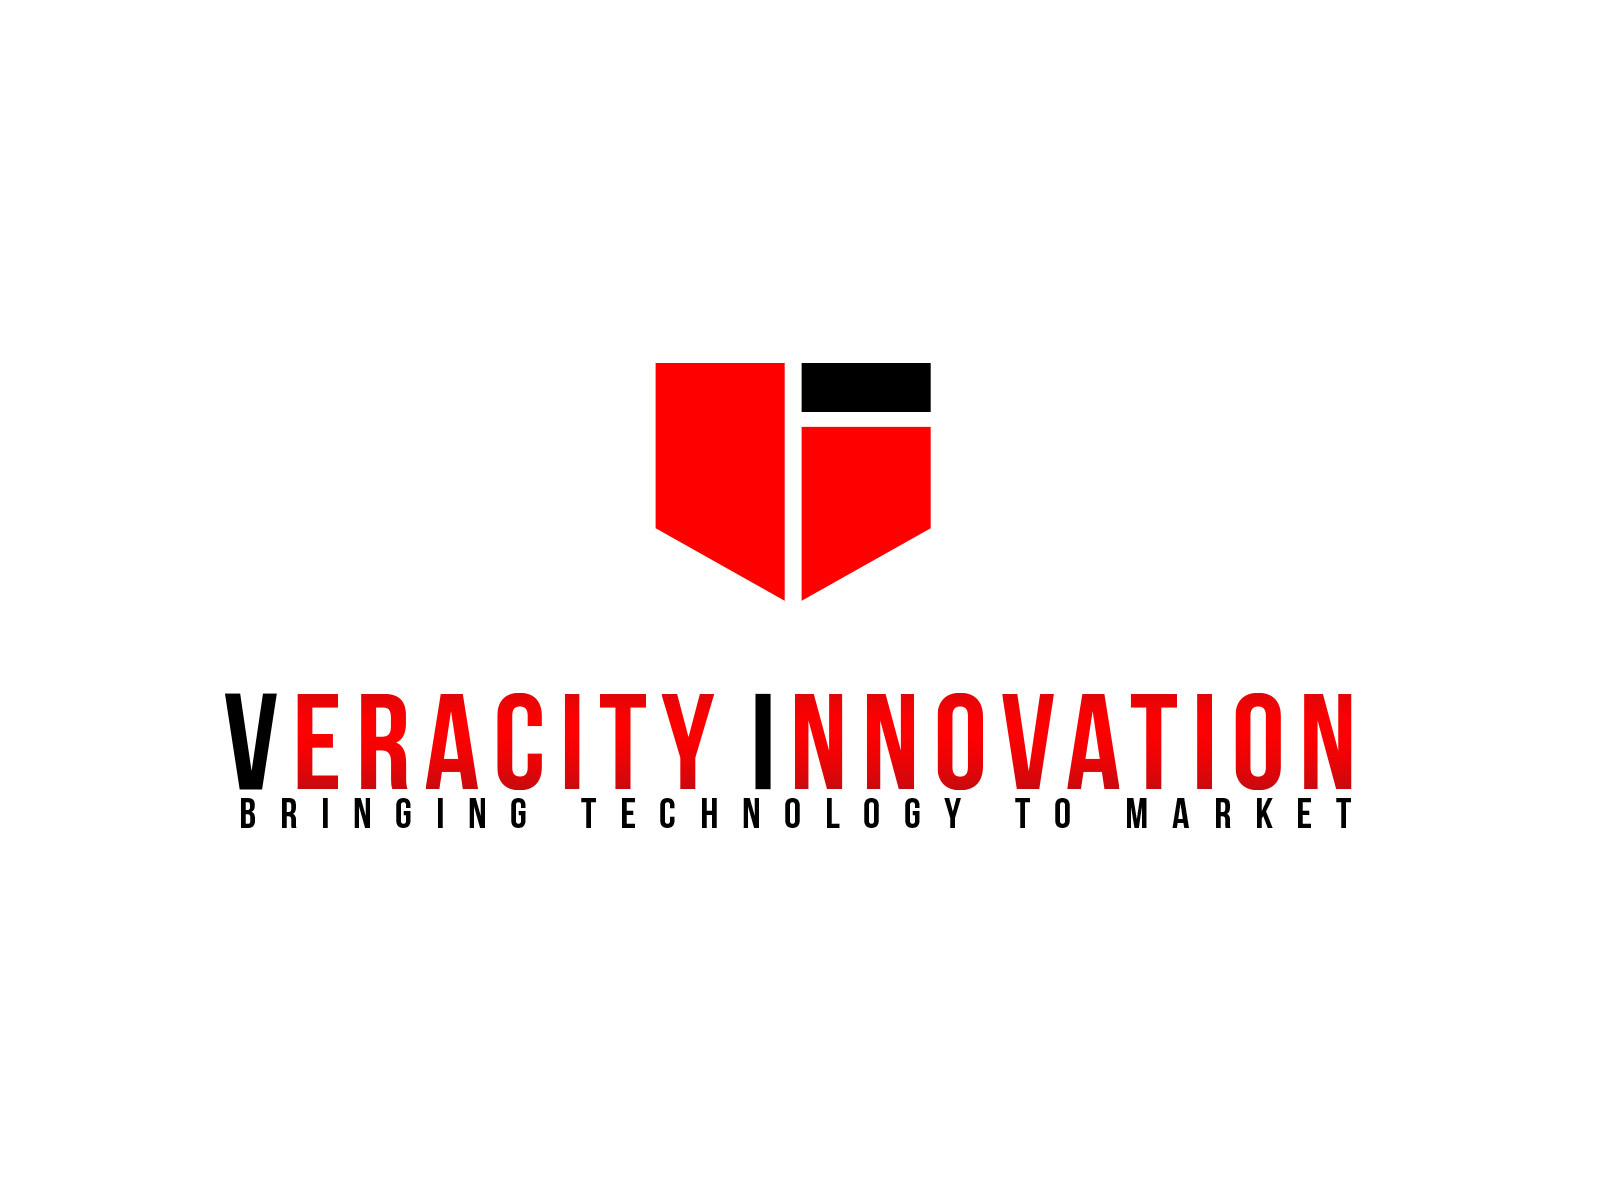 Logo Design by olii - Entry No. 310 in the Logo Design Contest Creative Logo Design for Veracity Innovation, LLC.